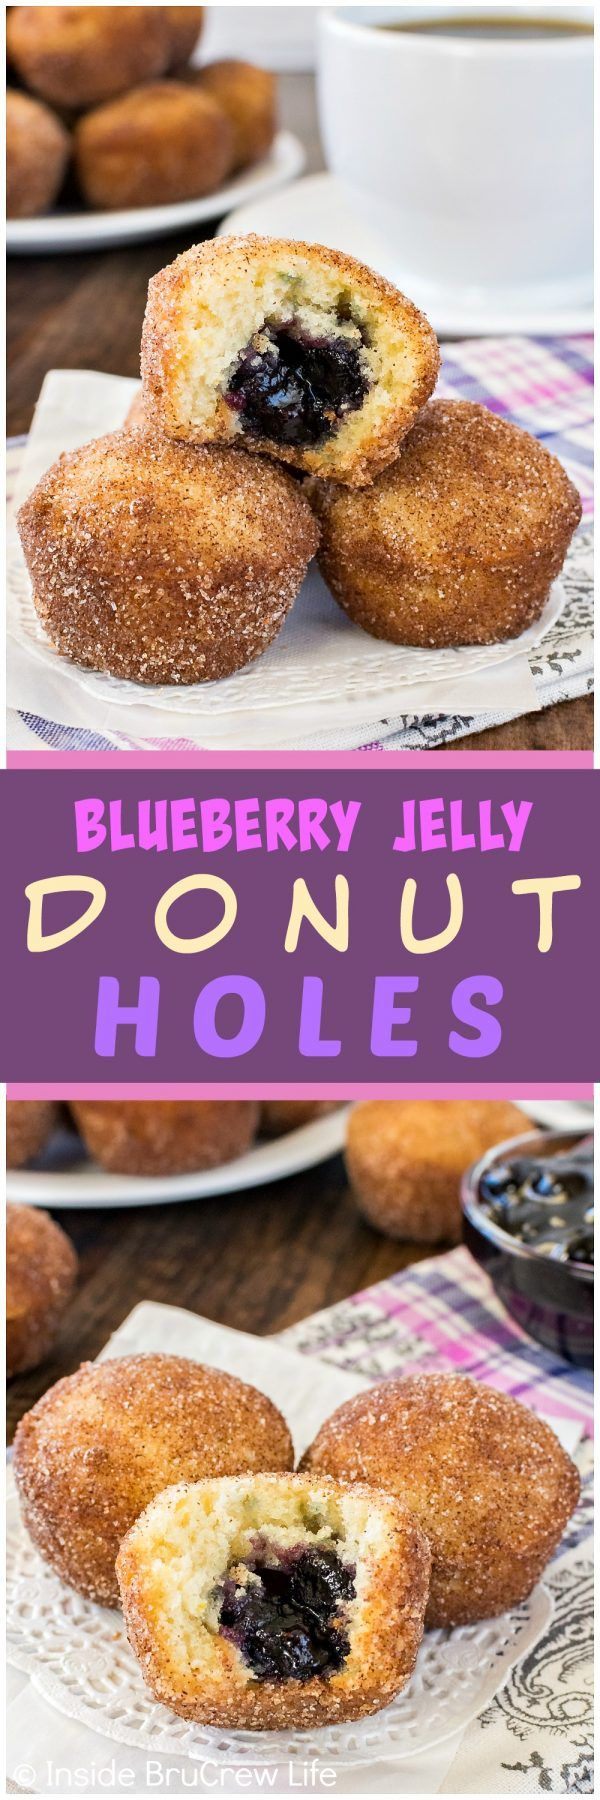 Blueberry Jelly Donut Holes - these little homemade donut holes have a sweet jelly filling and a cinnamon sugar crunch!  Great breakfast or snack recipe for any day!